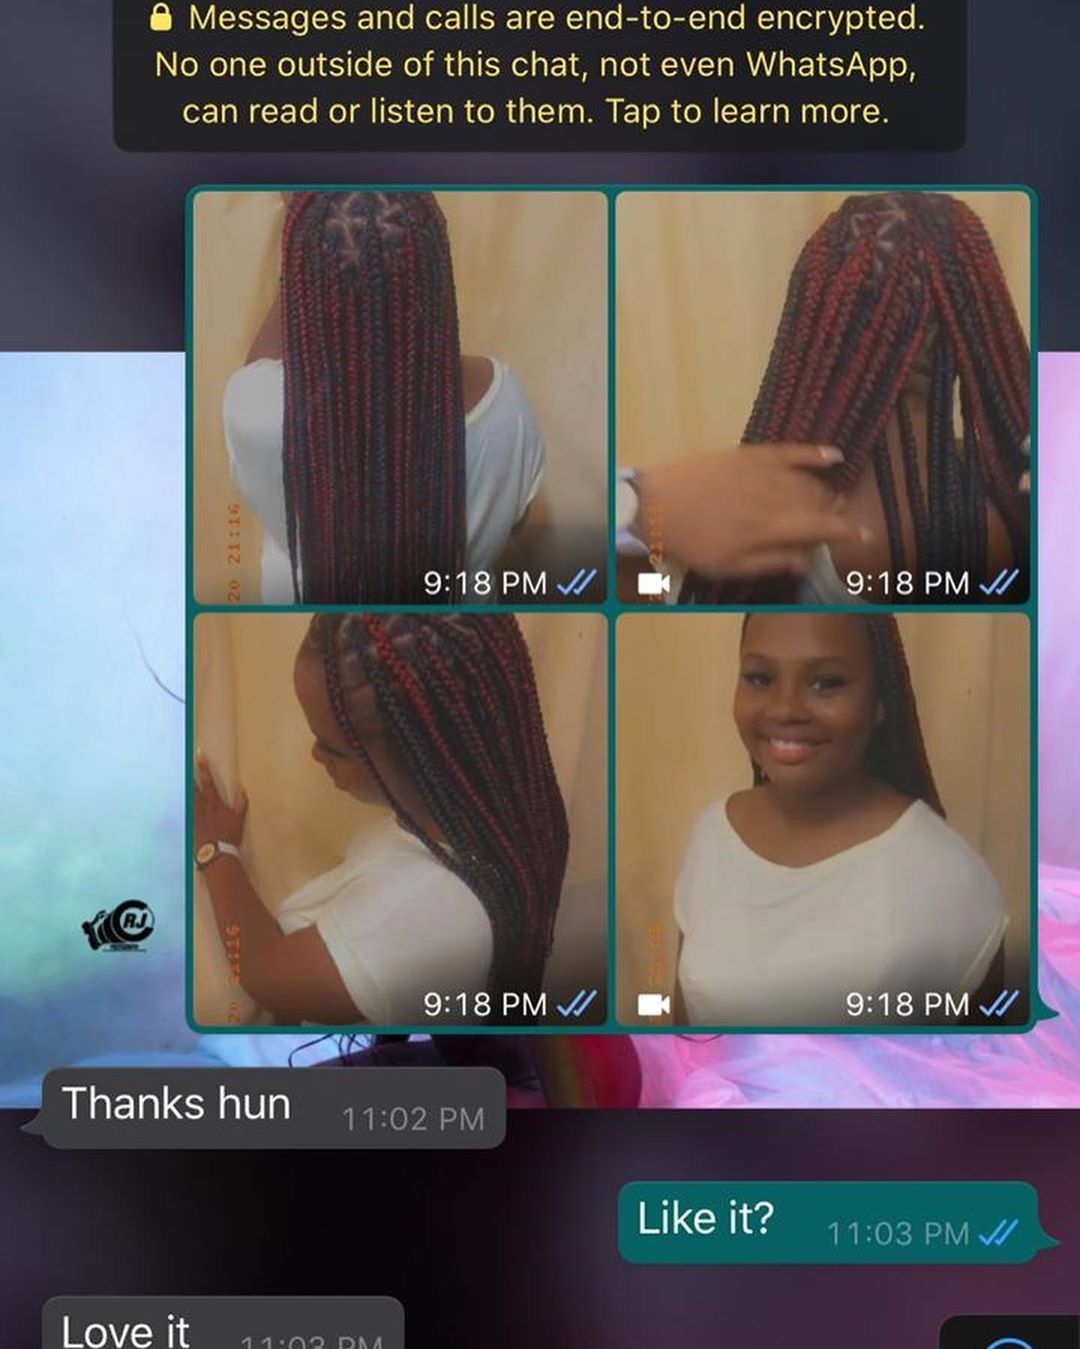 I Like When My Clients Are Happy Thanks For The Support Abriburey Hairstyles Hair Hairstyle Braids Br In 2020 Triangle Braids Braided Hairstyles Braid Styles